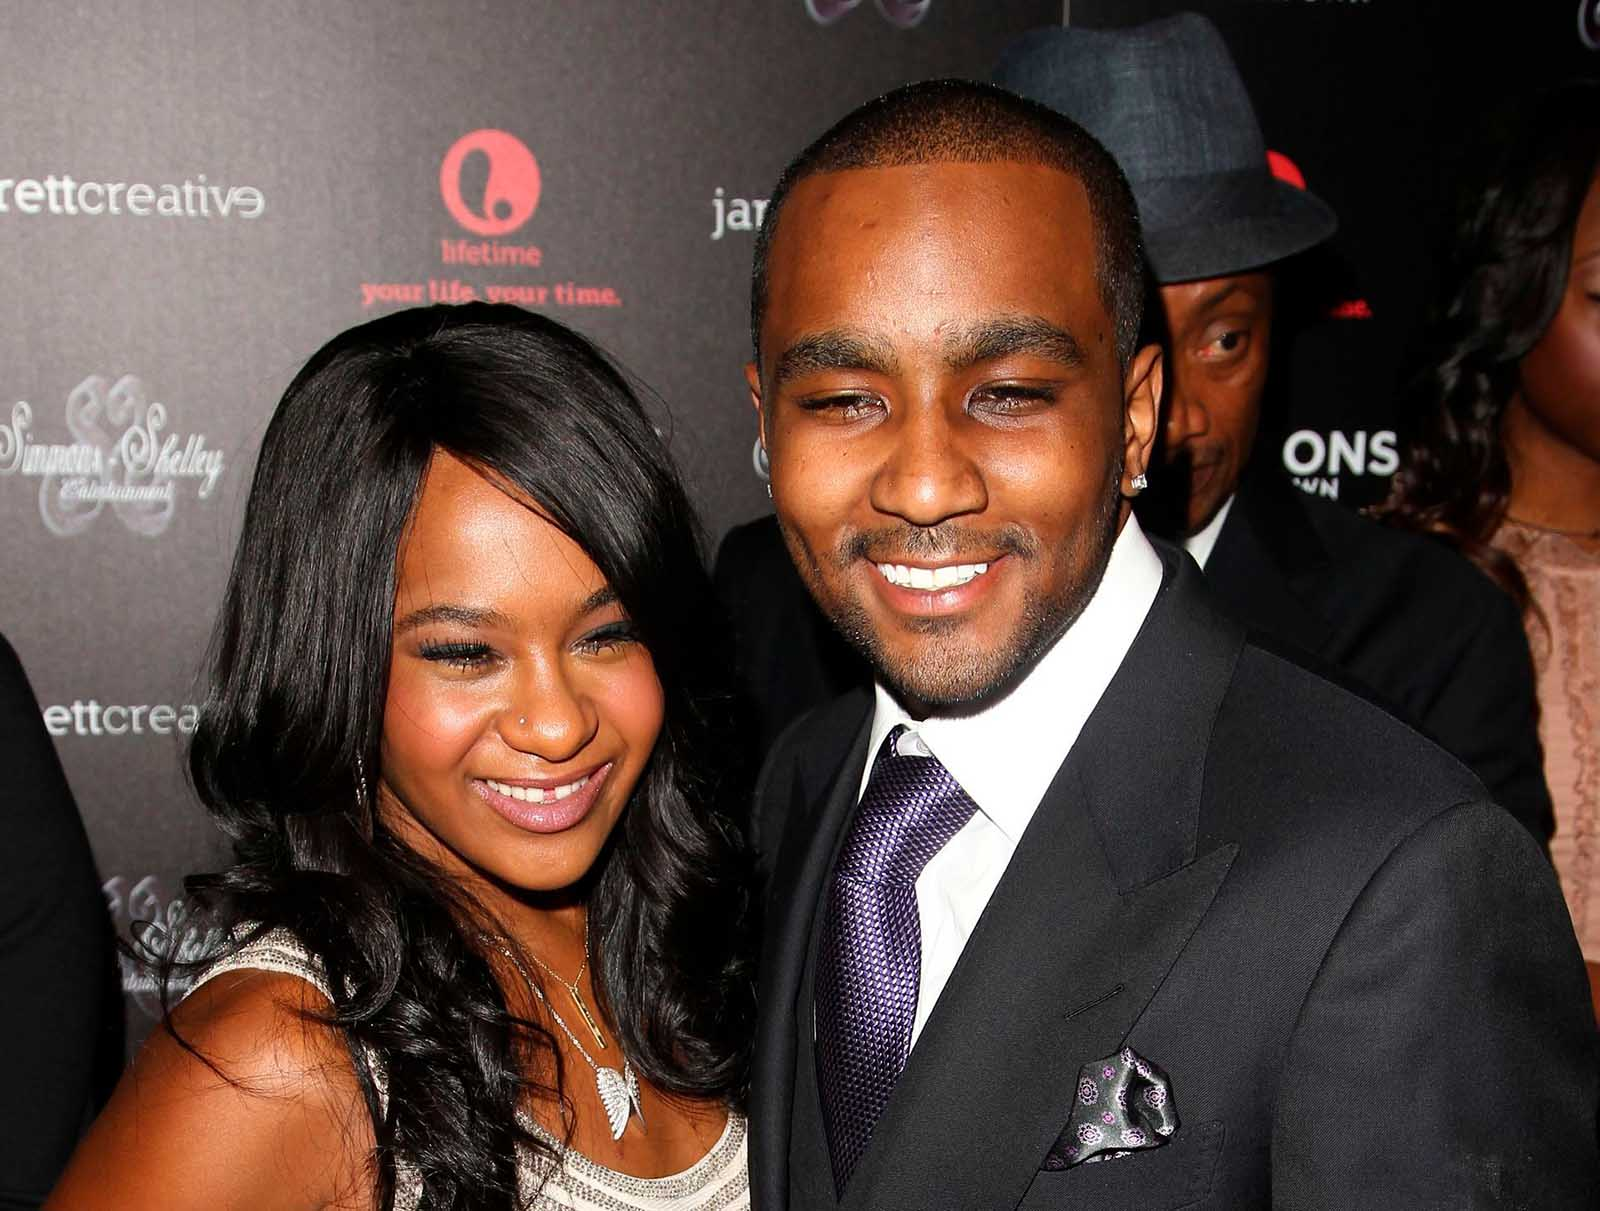 Bobby Brown's Wife And Kids Are 'Devastated' After Son's Death